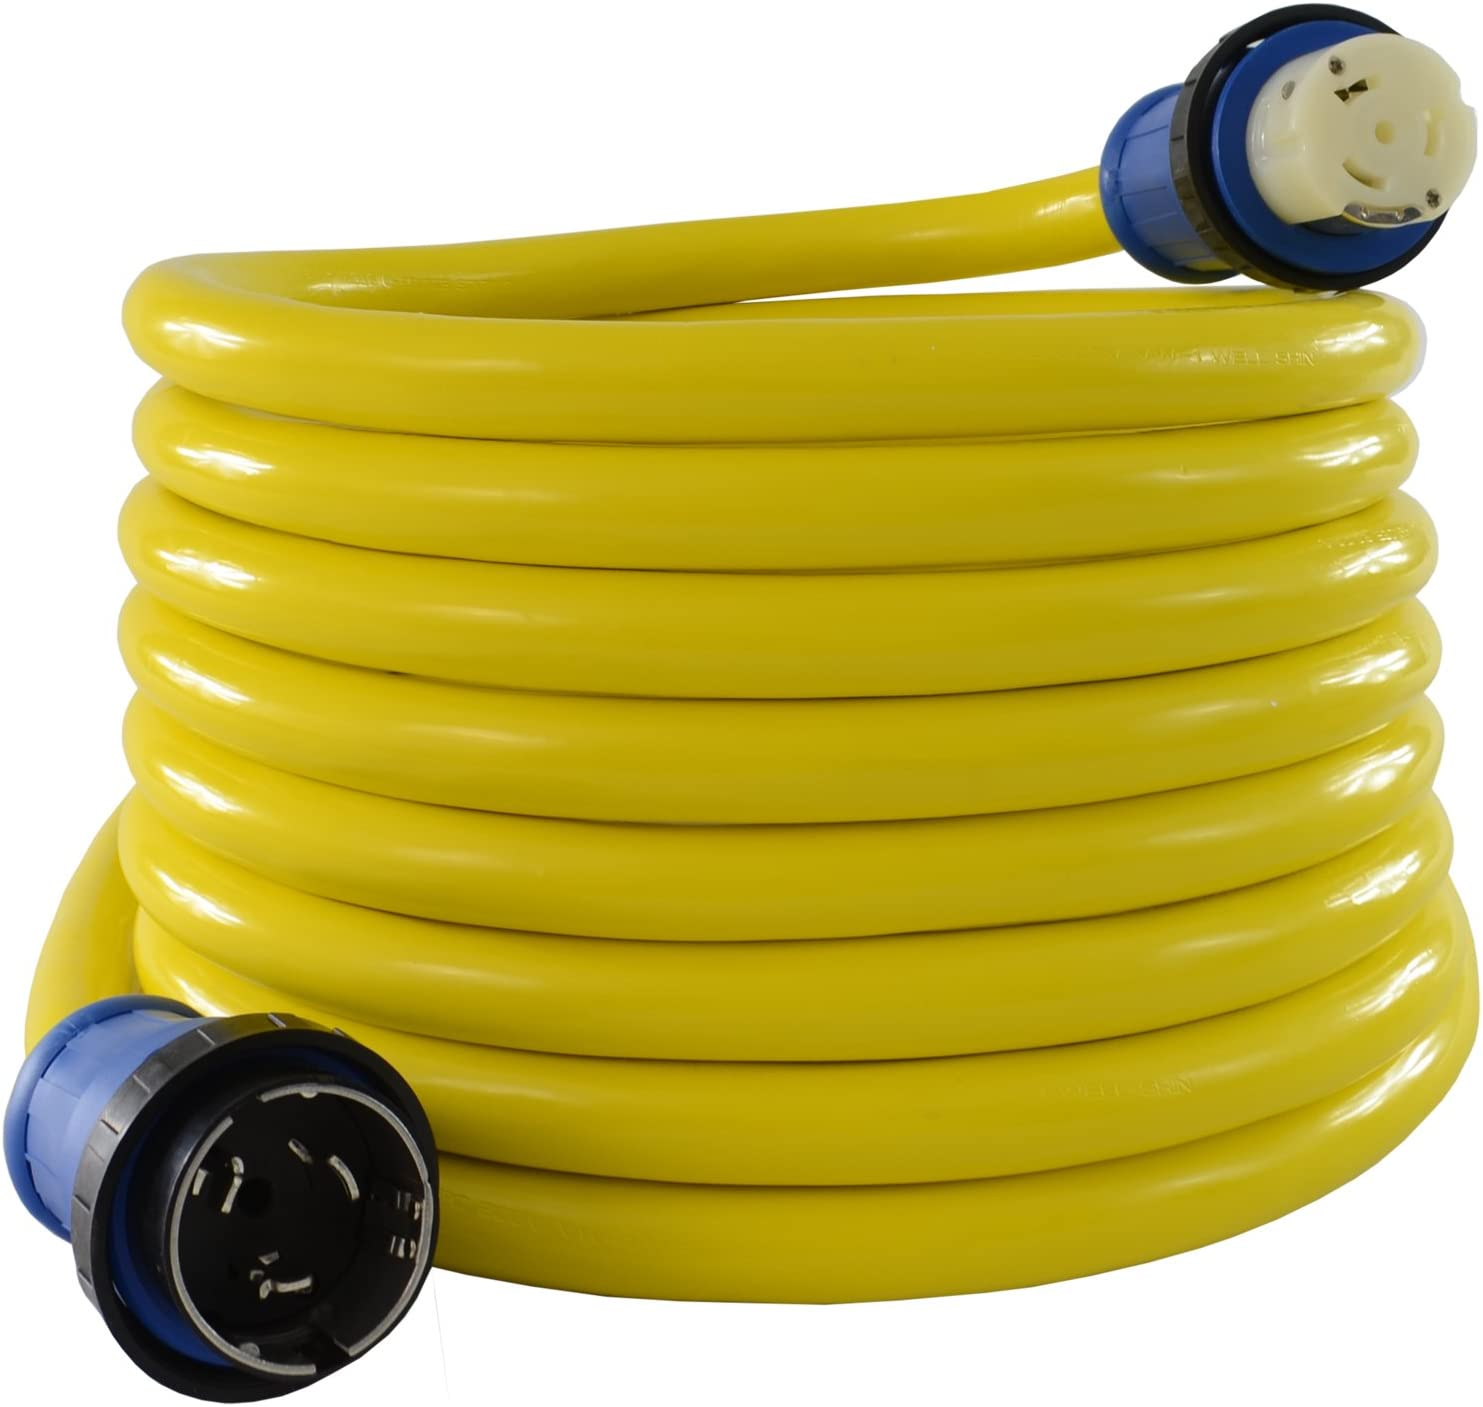 Conntek 50 Amp 125/250-Volt Marine Shore Power Extension 4 Wires Cord with Threaded Ring (Yellow 50-Feet) : Boating Shore Power Cords : Sports & Outdoors